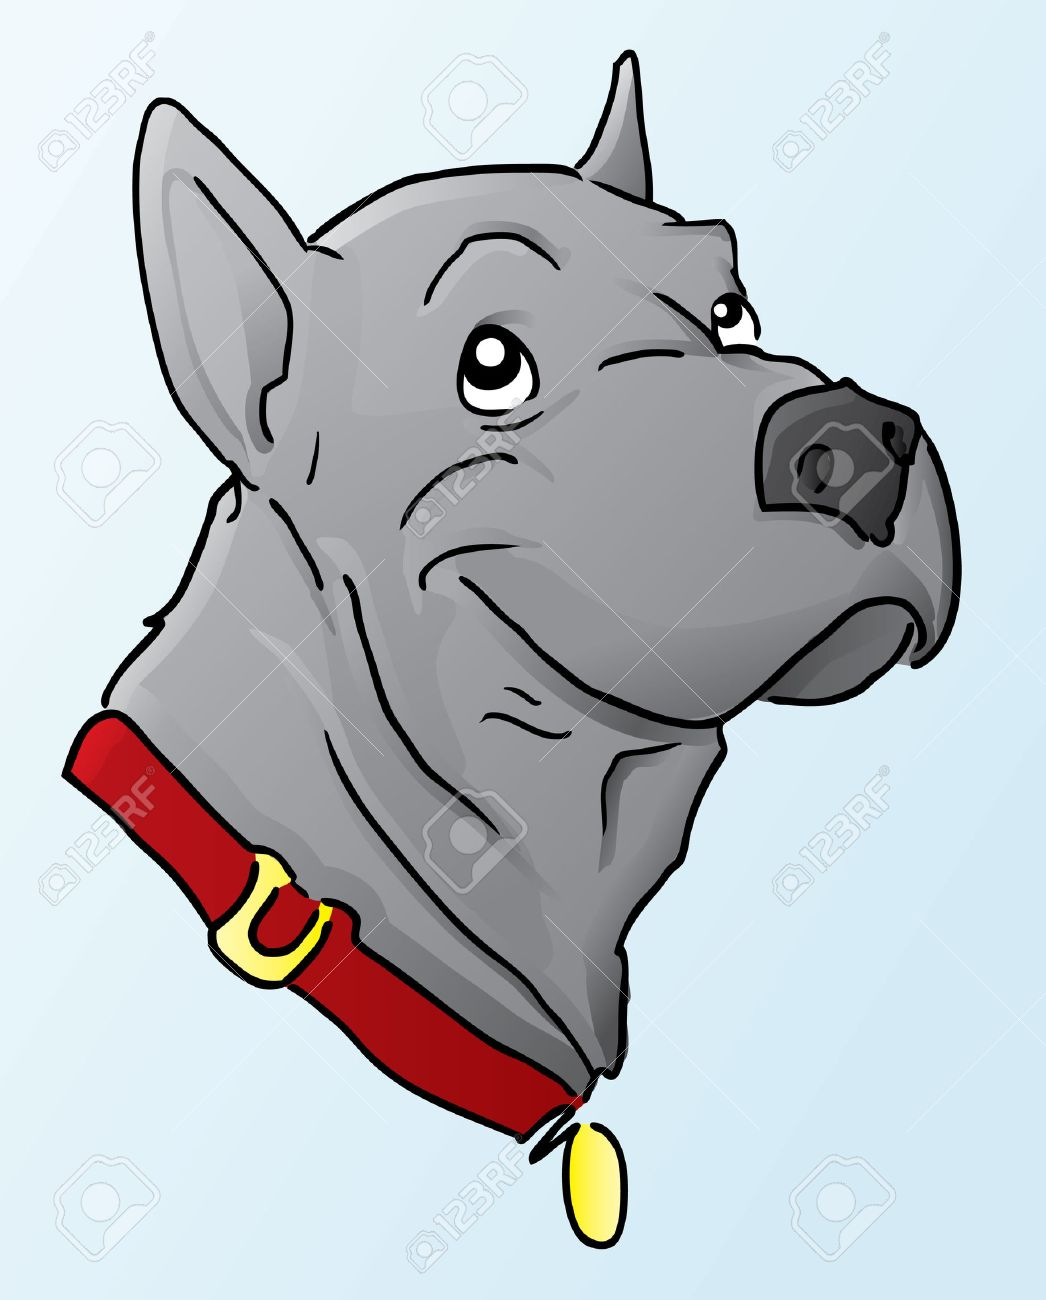 Great Dane Cartoon Stock Vector - 7587485